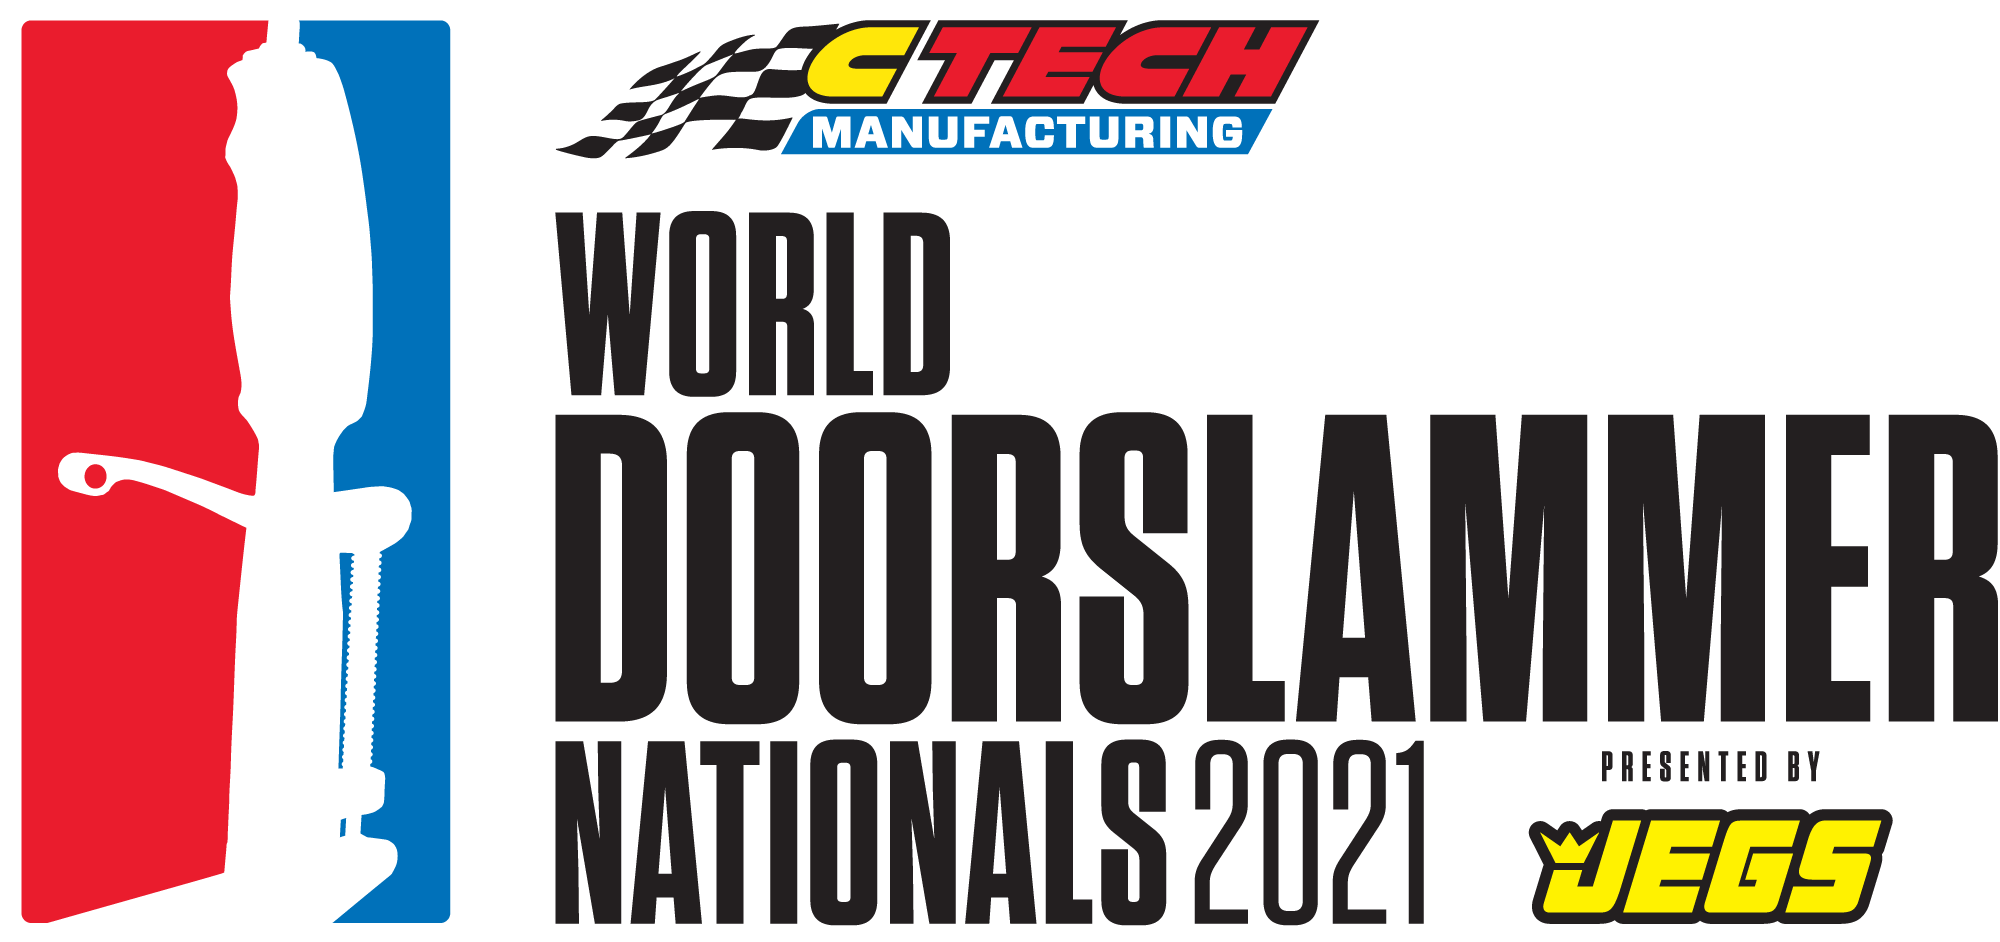 CTECH World Doorslammer Nationals